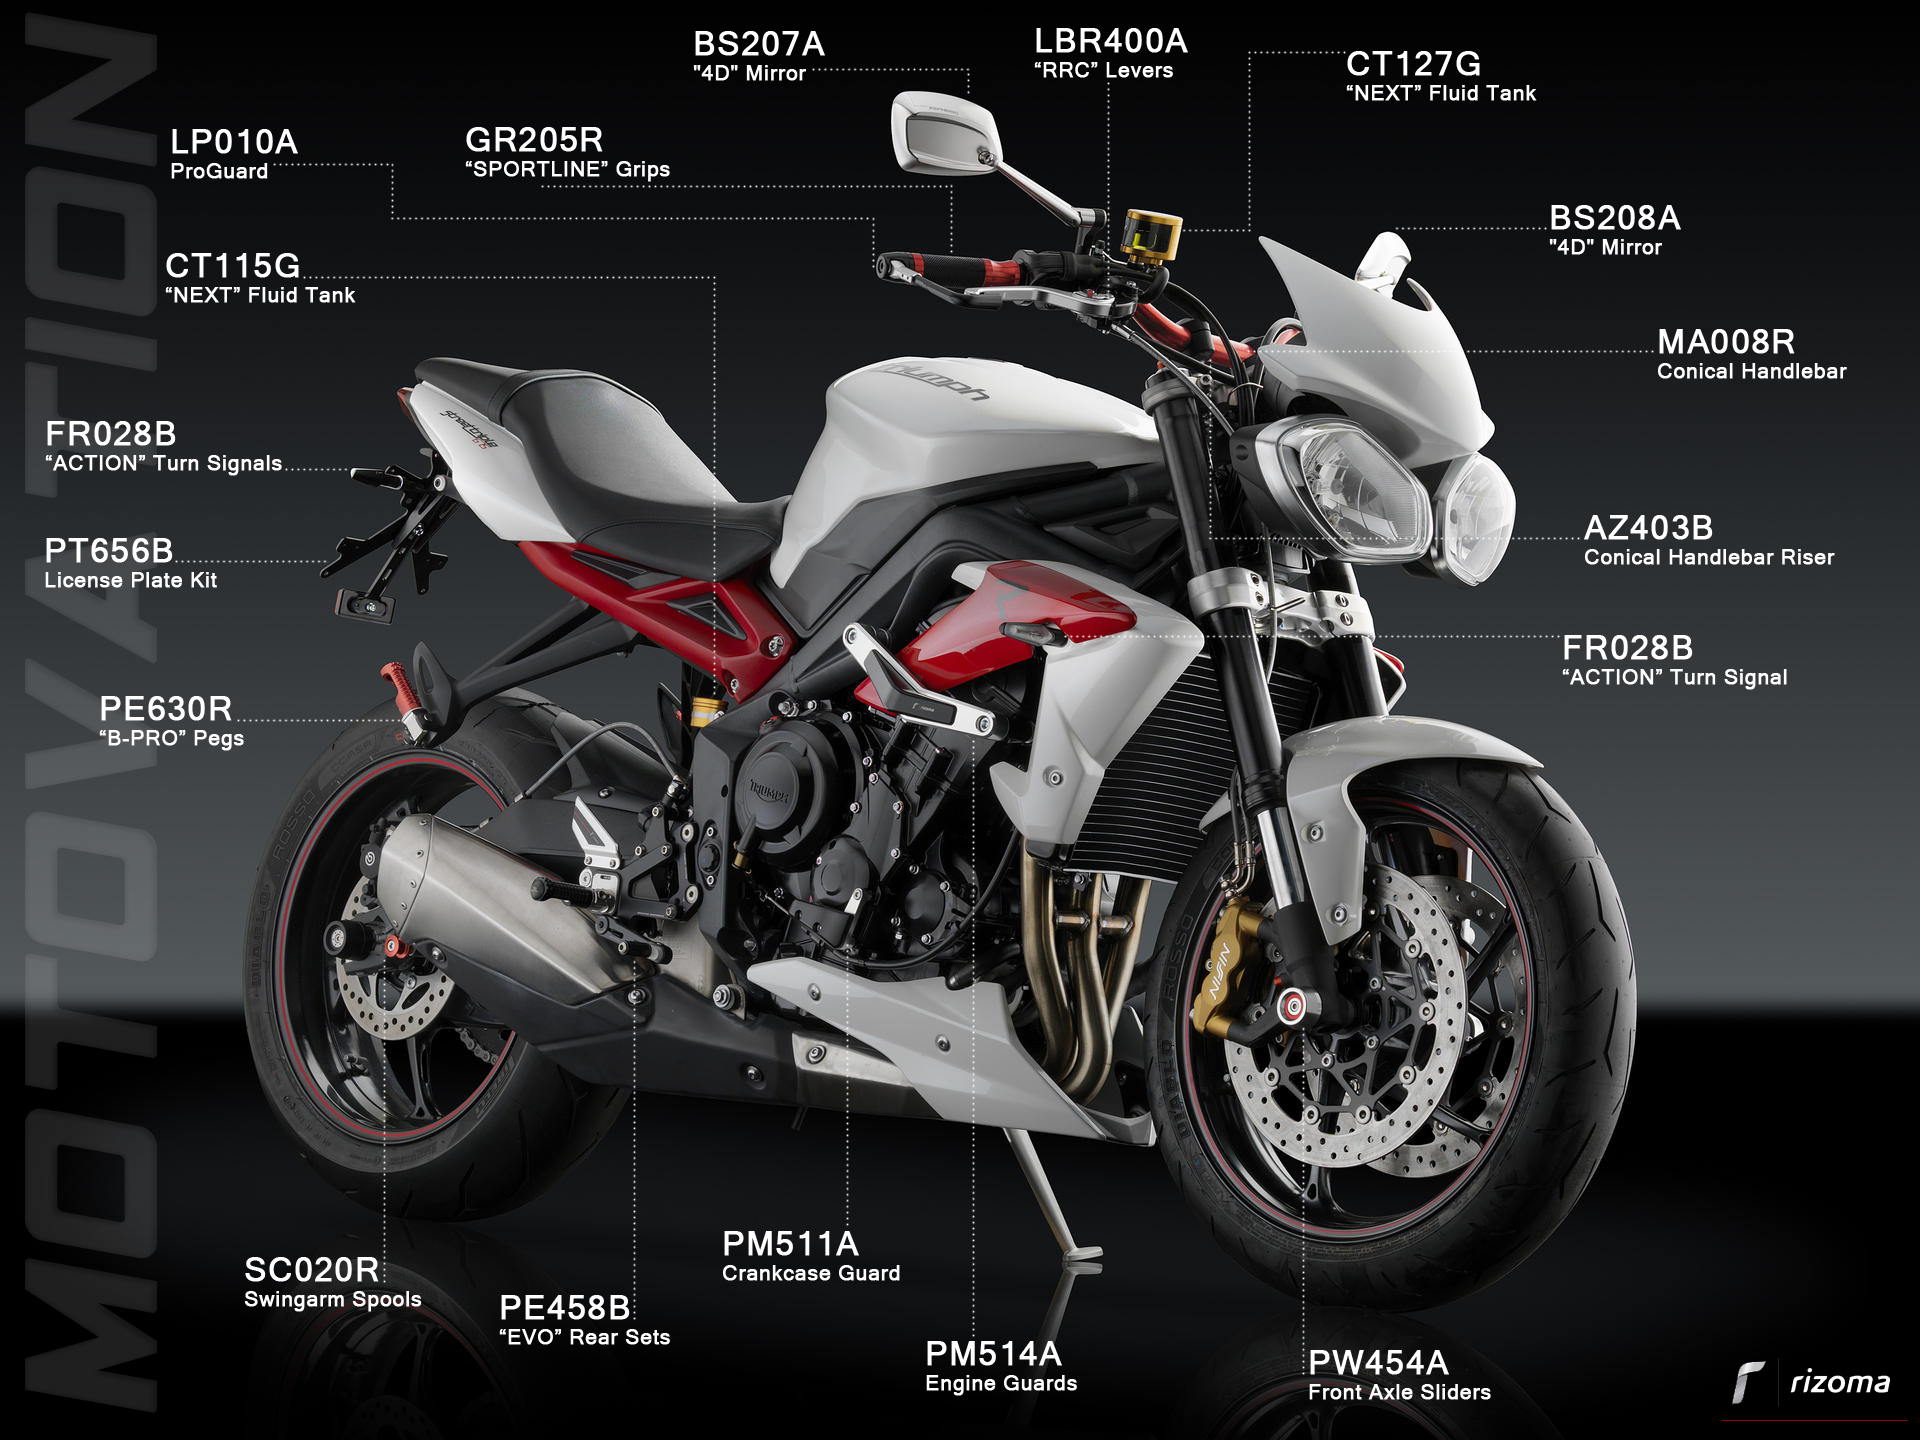 Triumphstreettriple Diagram on Harley Davidson Engine Parts Diagram